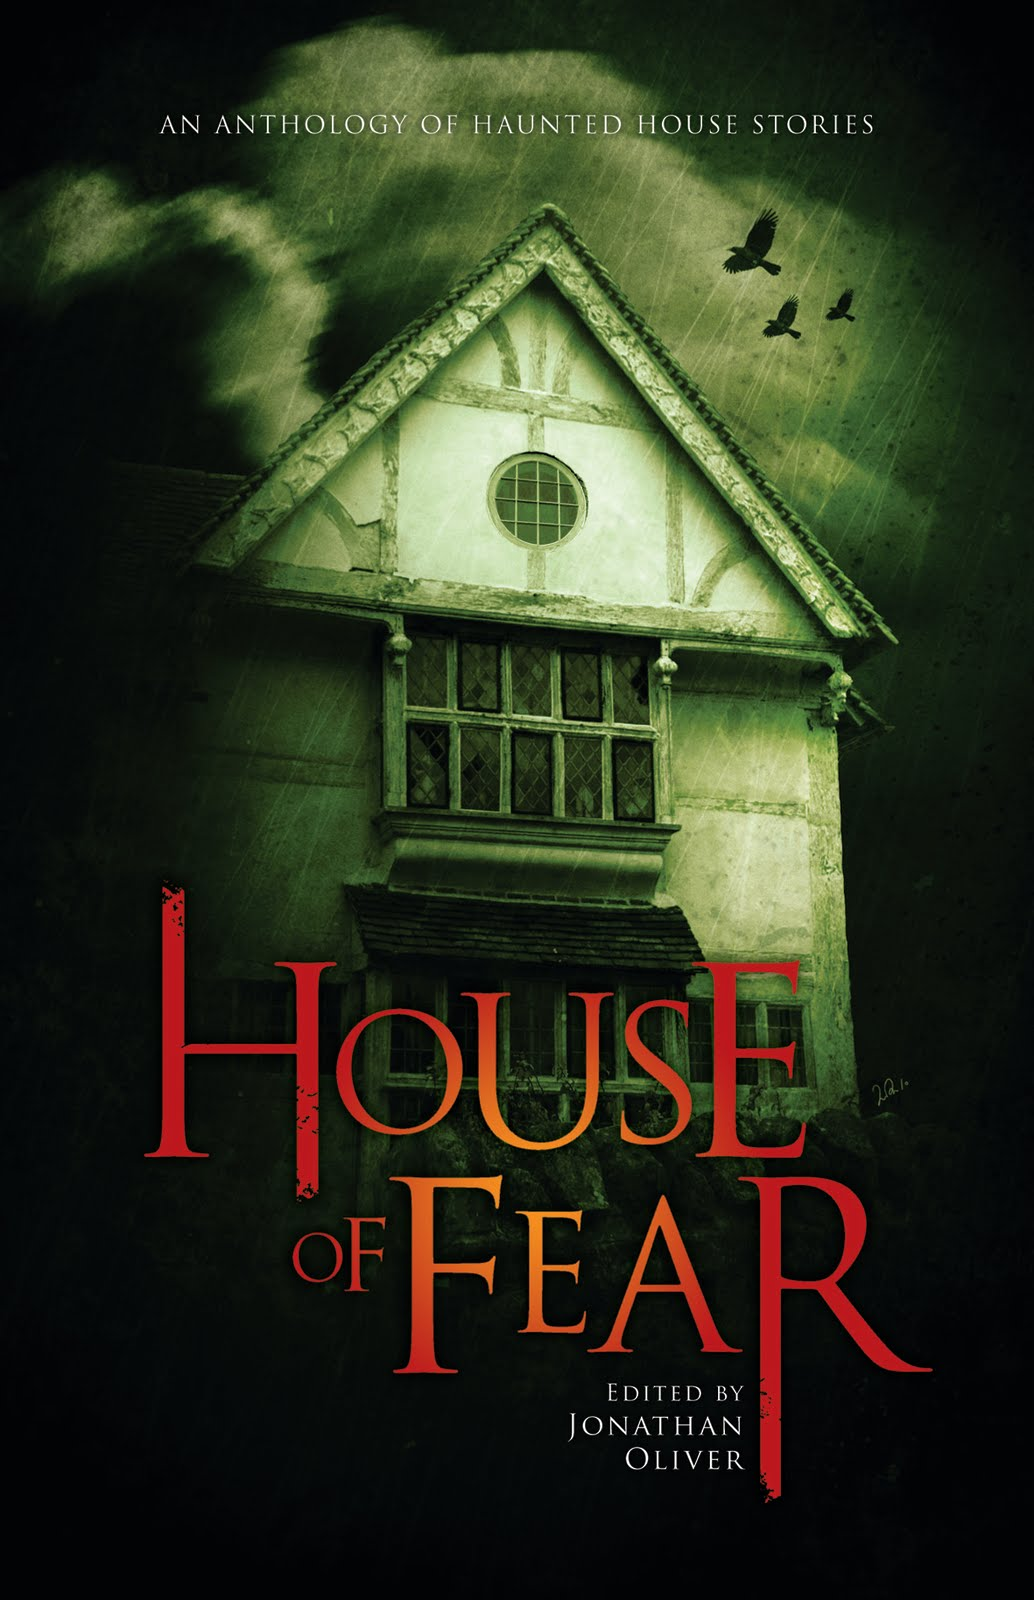 House of Fear edited by Jonathan Oliver | Thinking about books